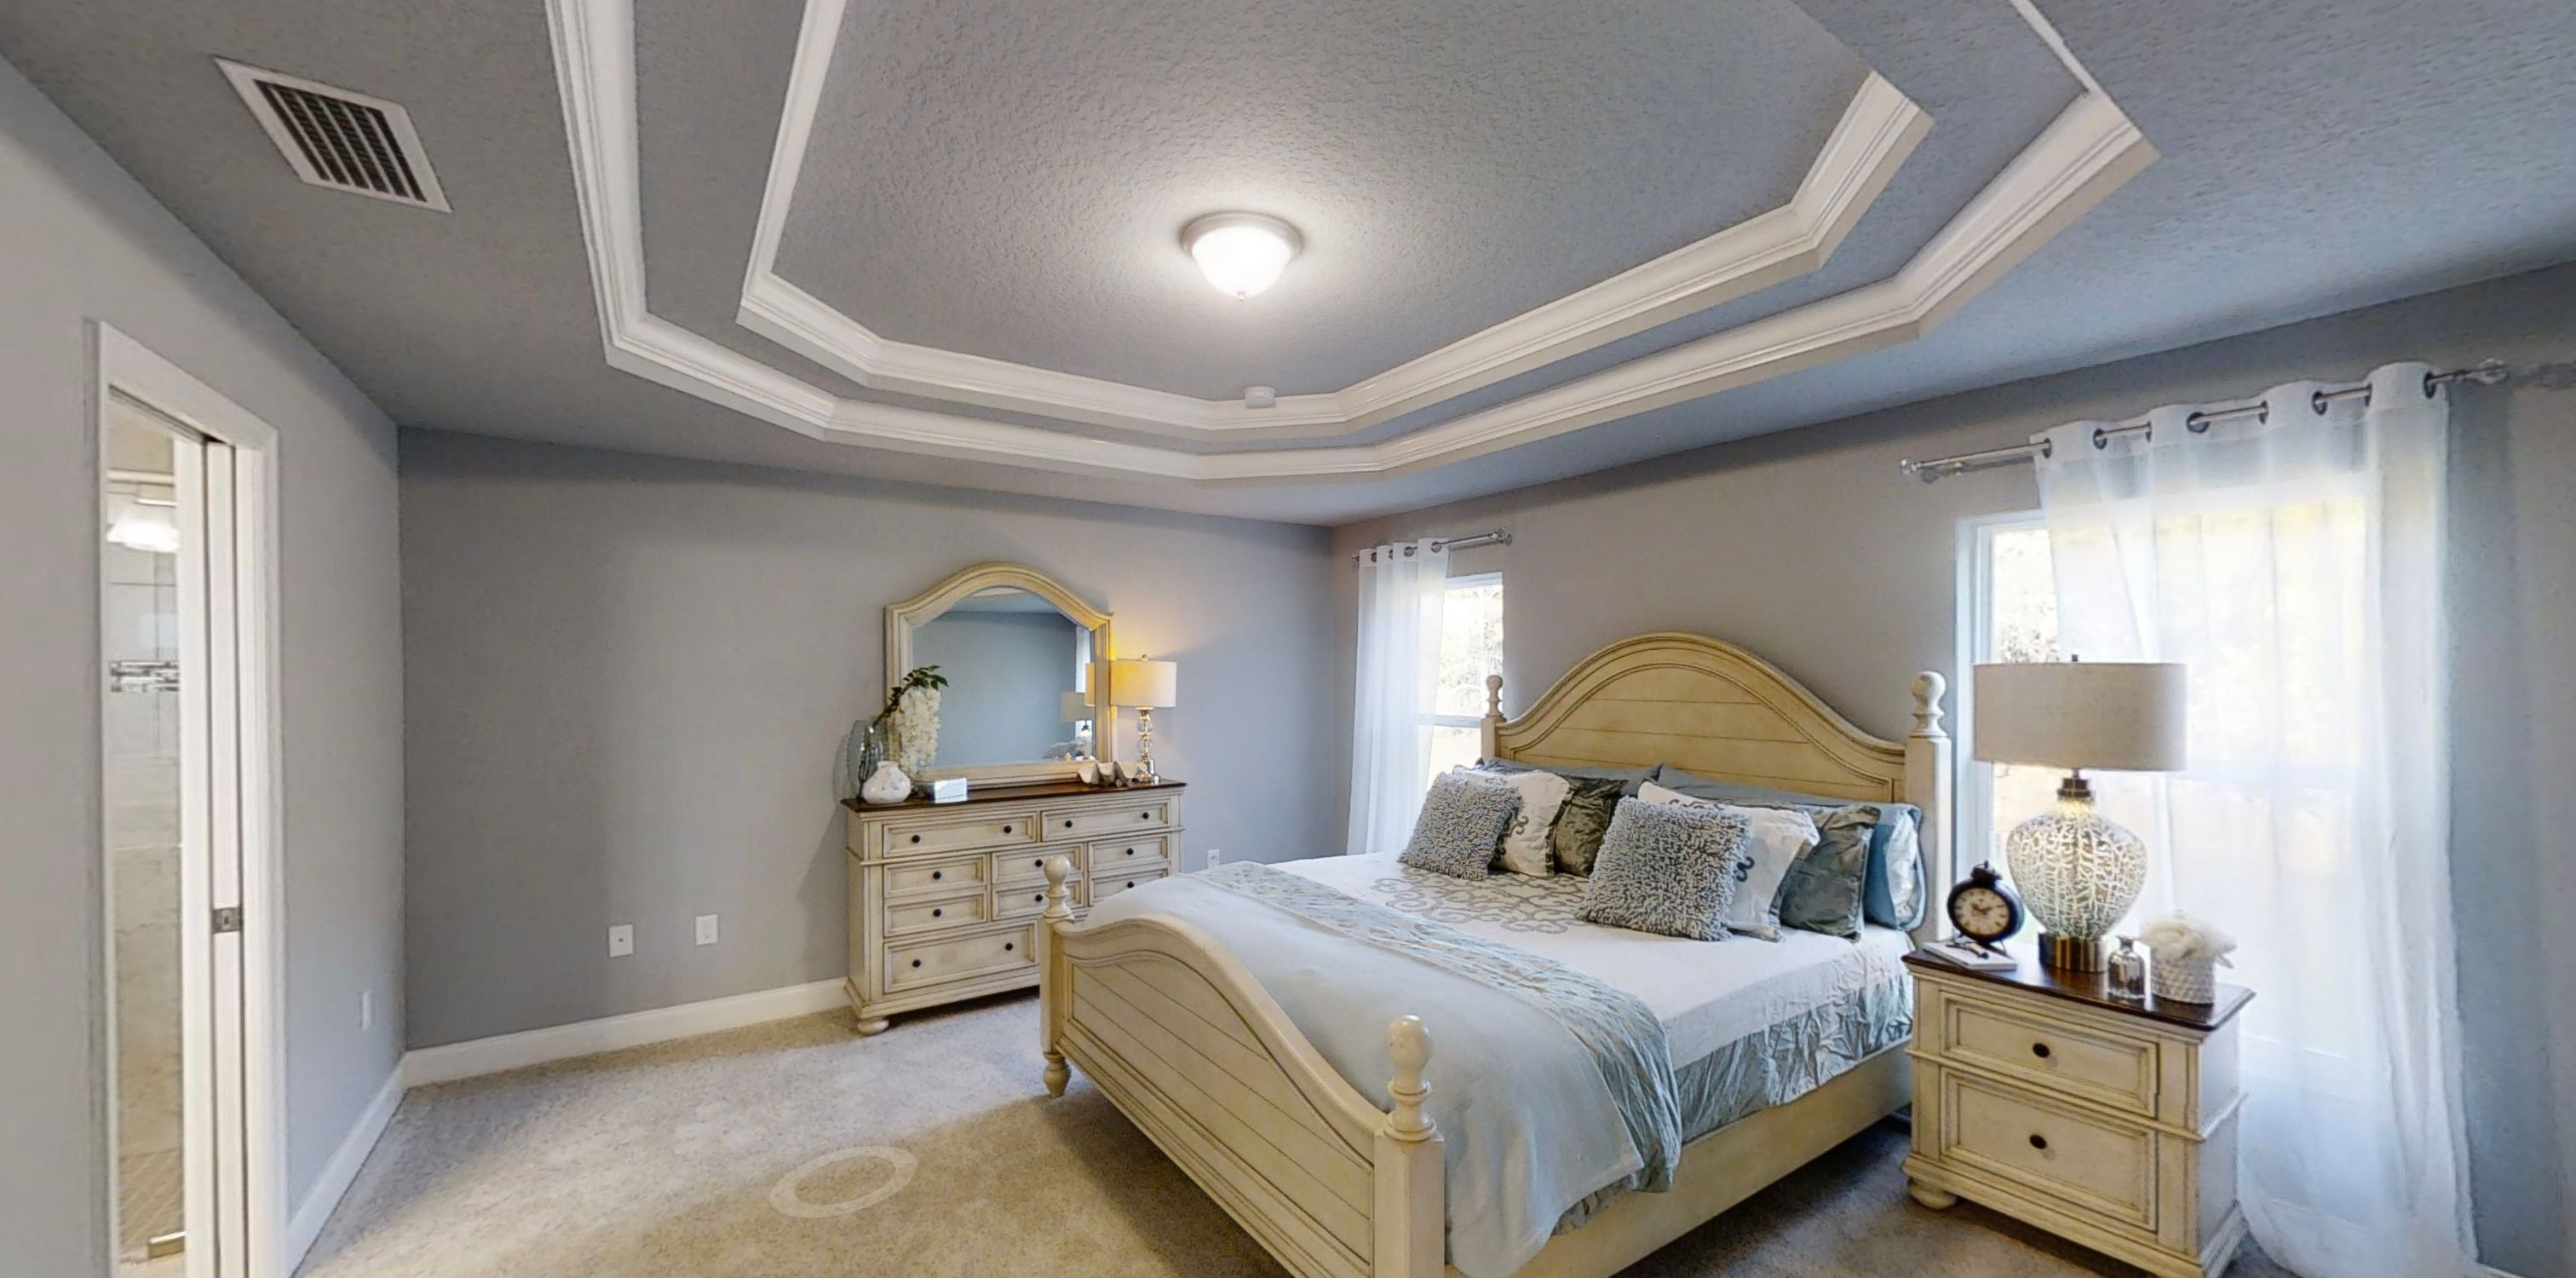 Bedroom featured in The Greystone By Vanacore Homes in Daytona Beach, FL